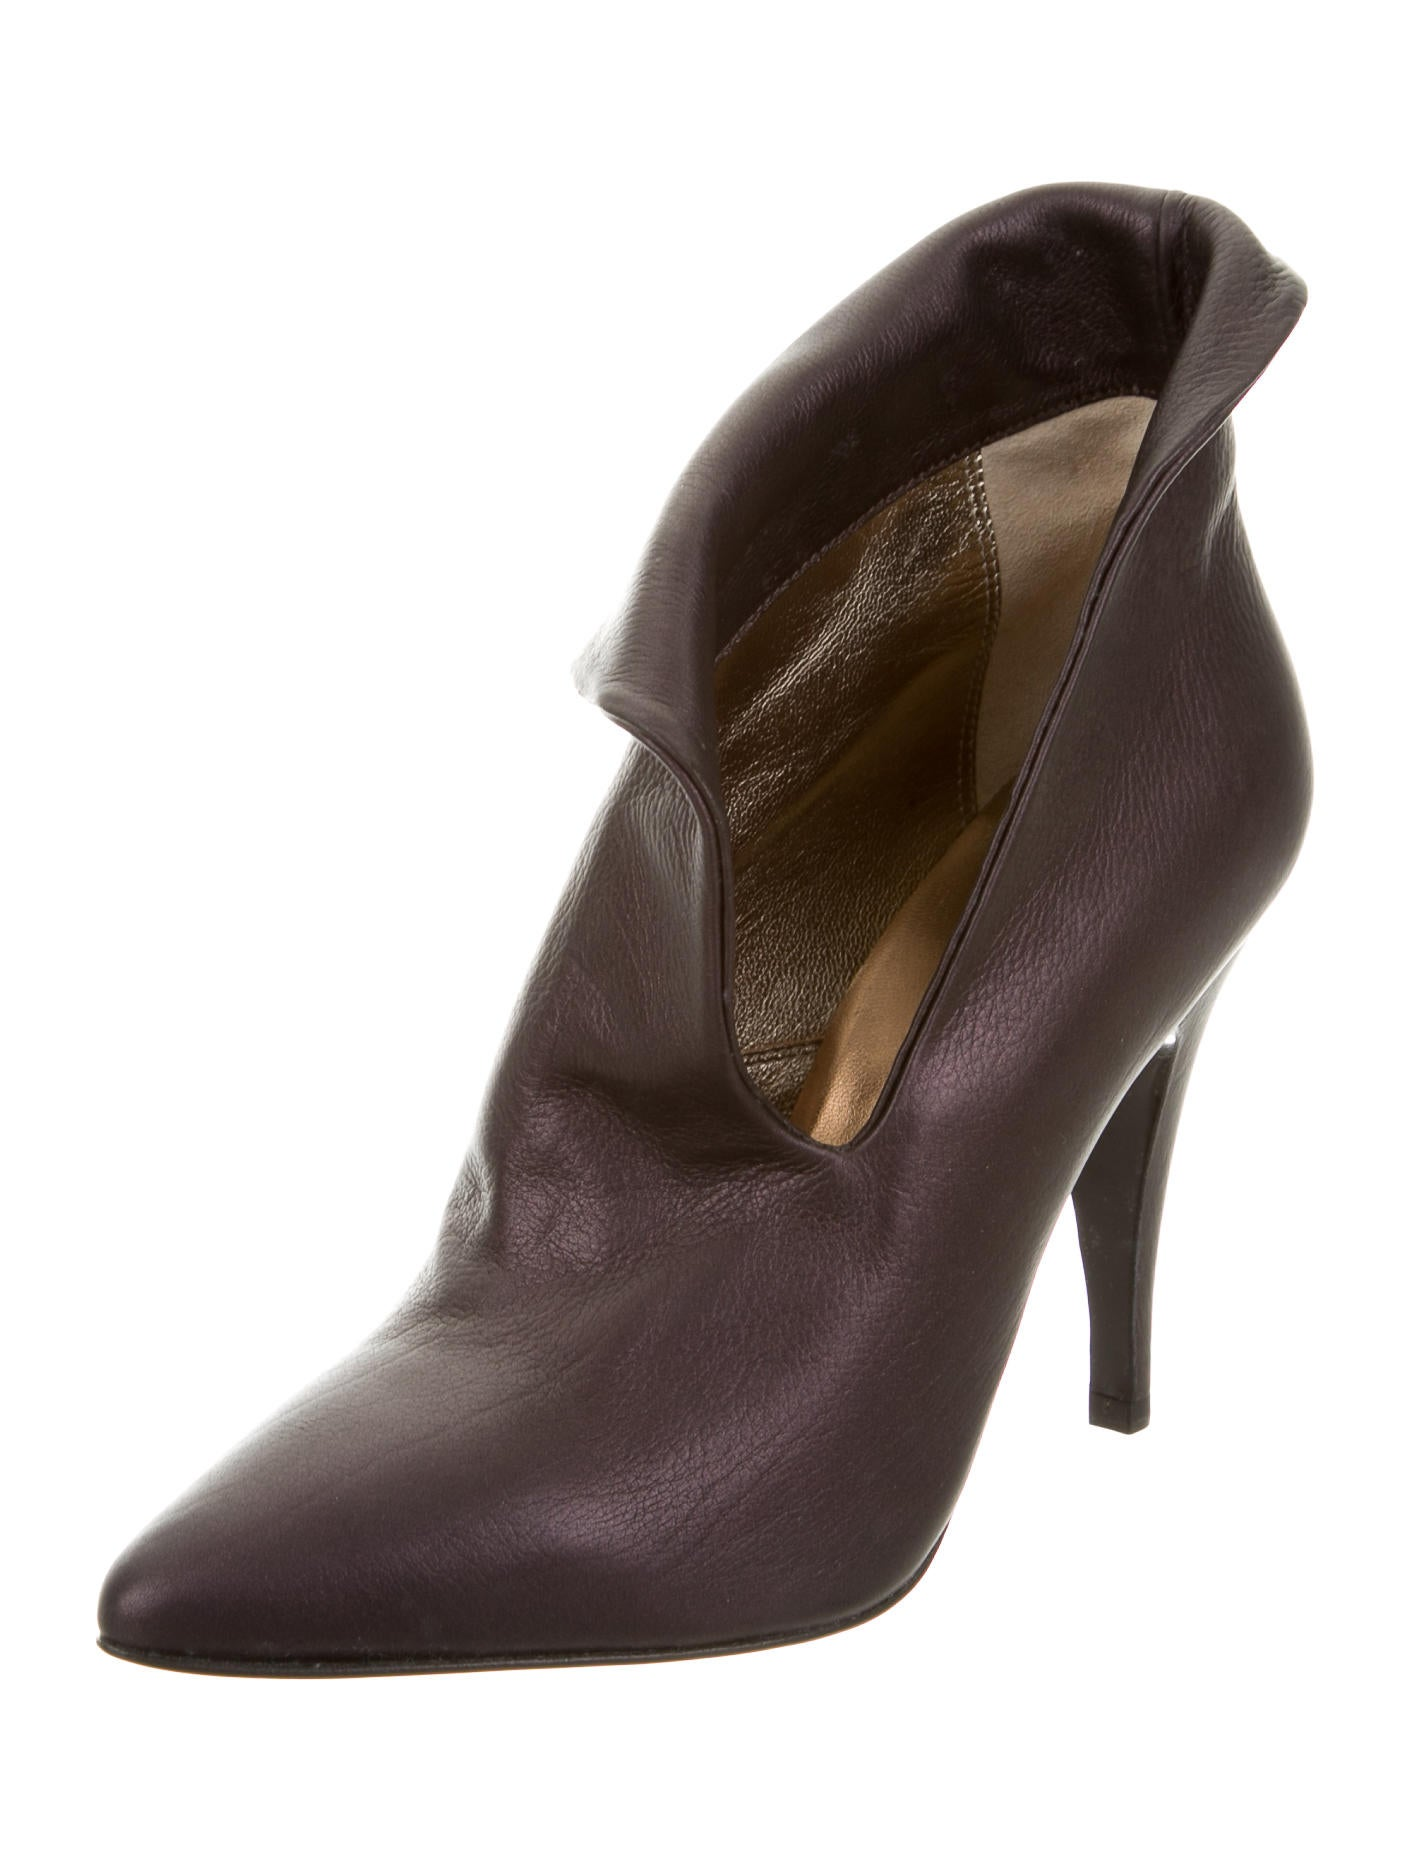 sigerson morrison leather pointed toe ankle boots shoes